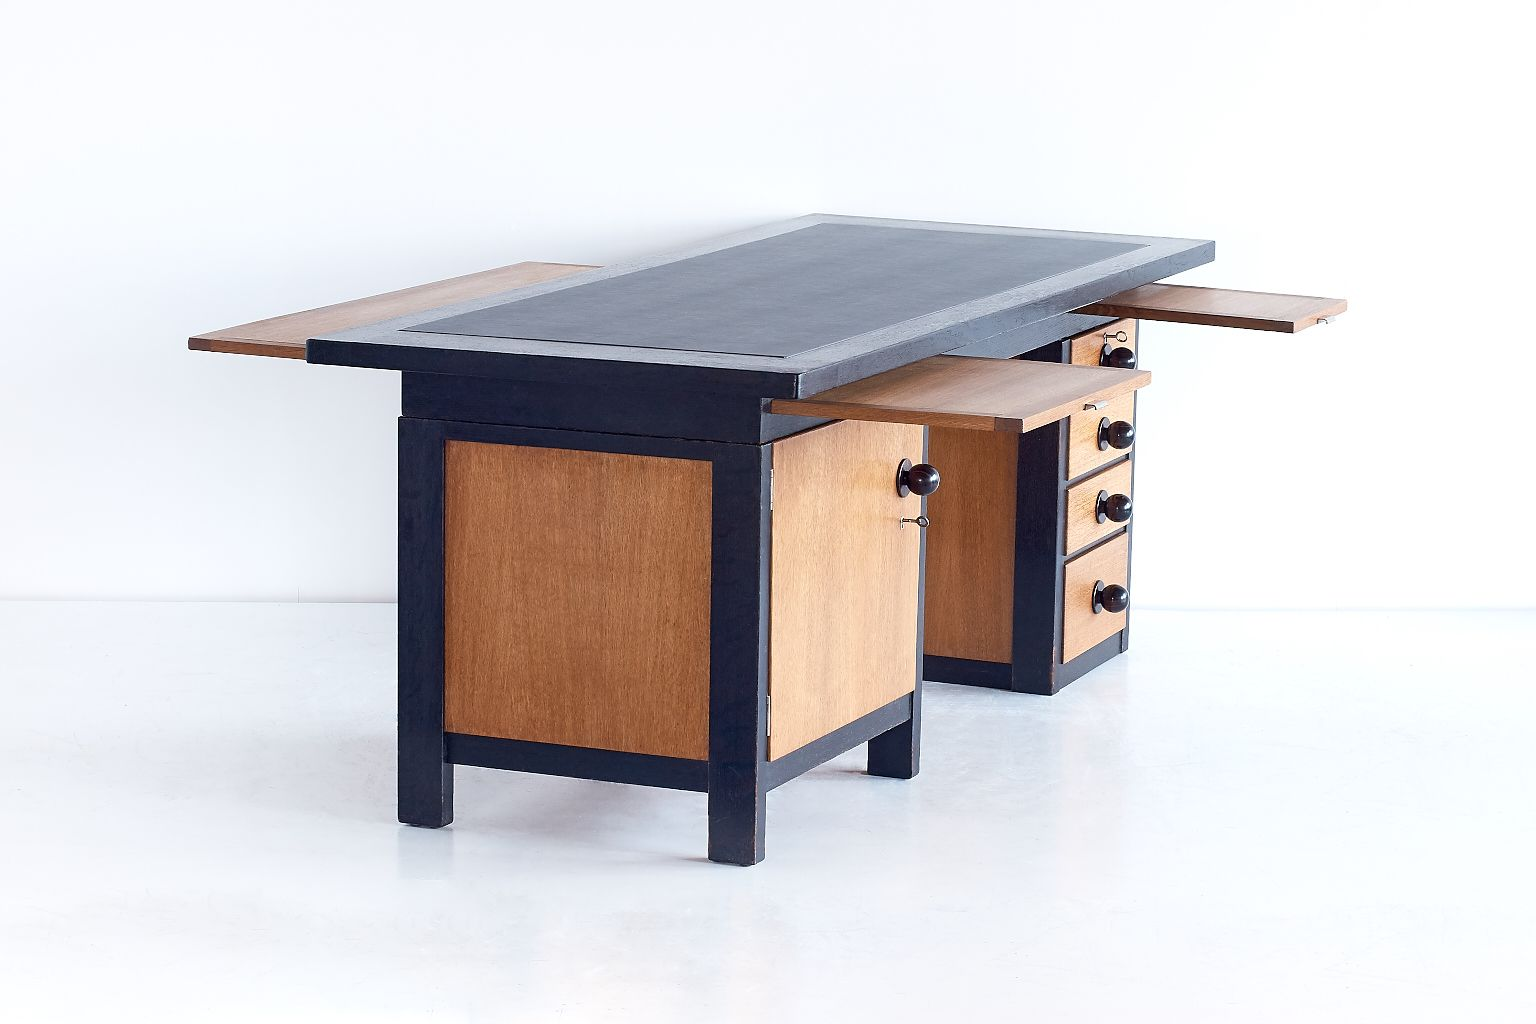 architect 39 s desk by frits spanjaard 1932 for sale at pamono